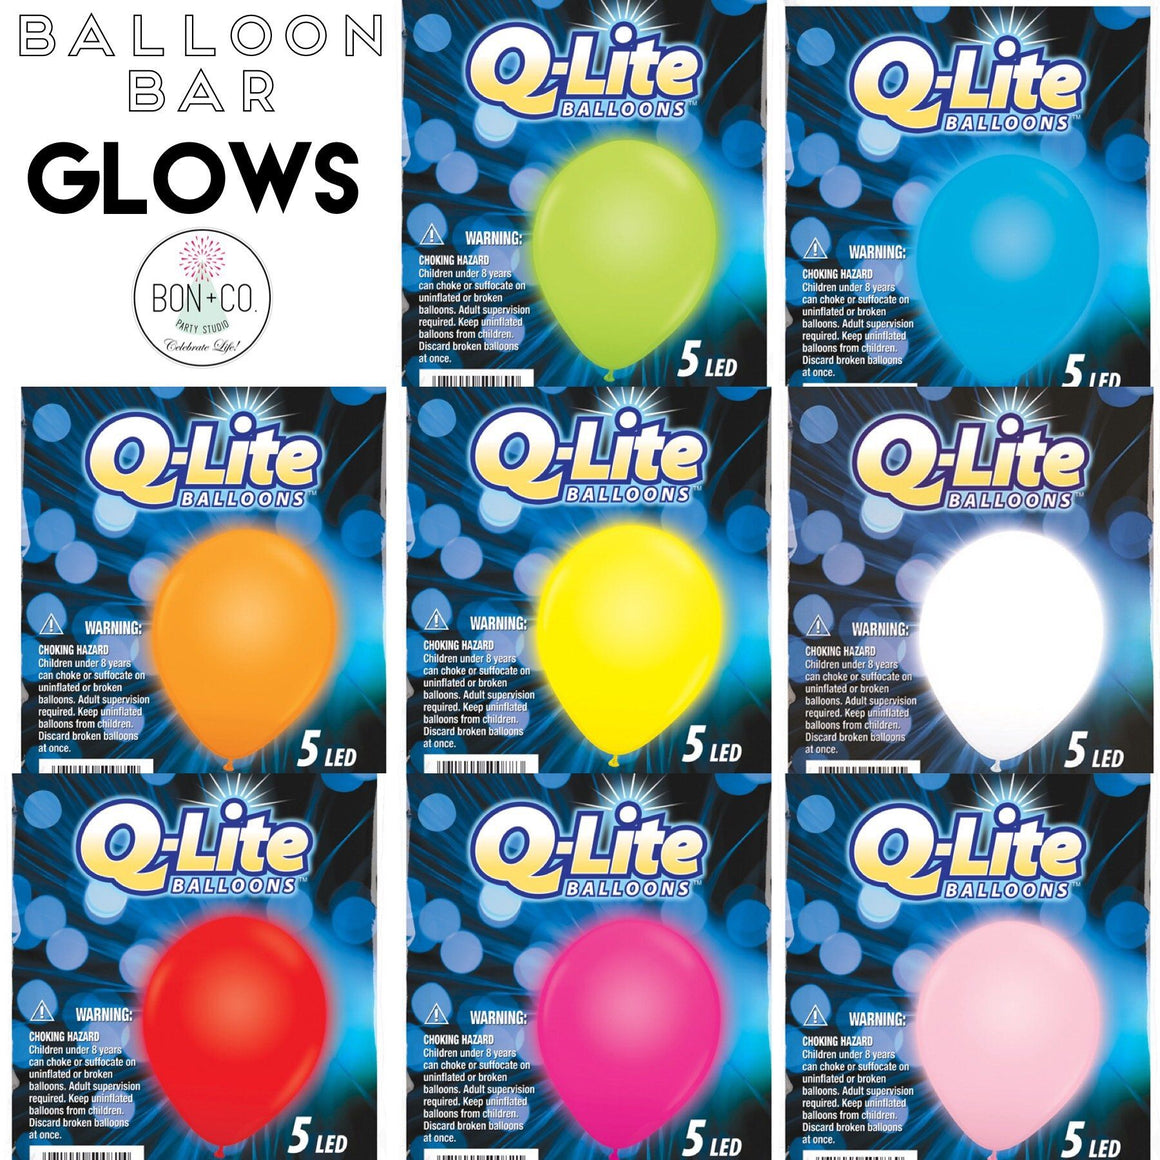 "BALLOON BAR - 11"" Q LITE GLOW 5 PACK, Balloons, QUALATEX - Bon + Co. Party Studio"